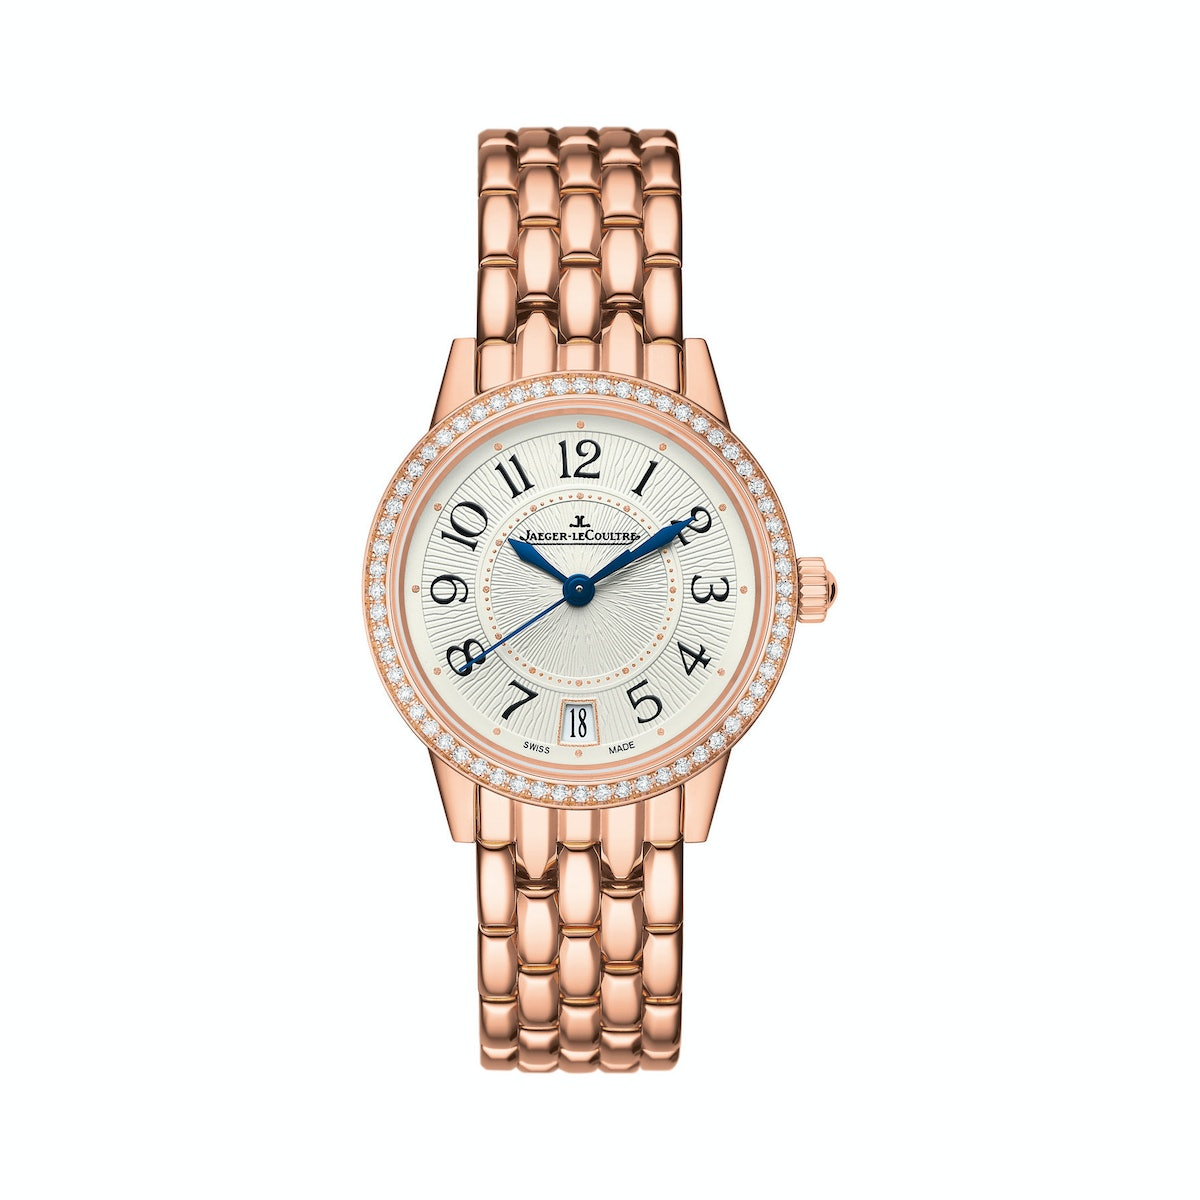 Jaeger-LeCoultre gold watch